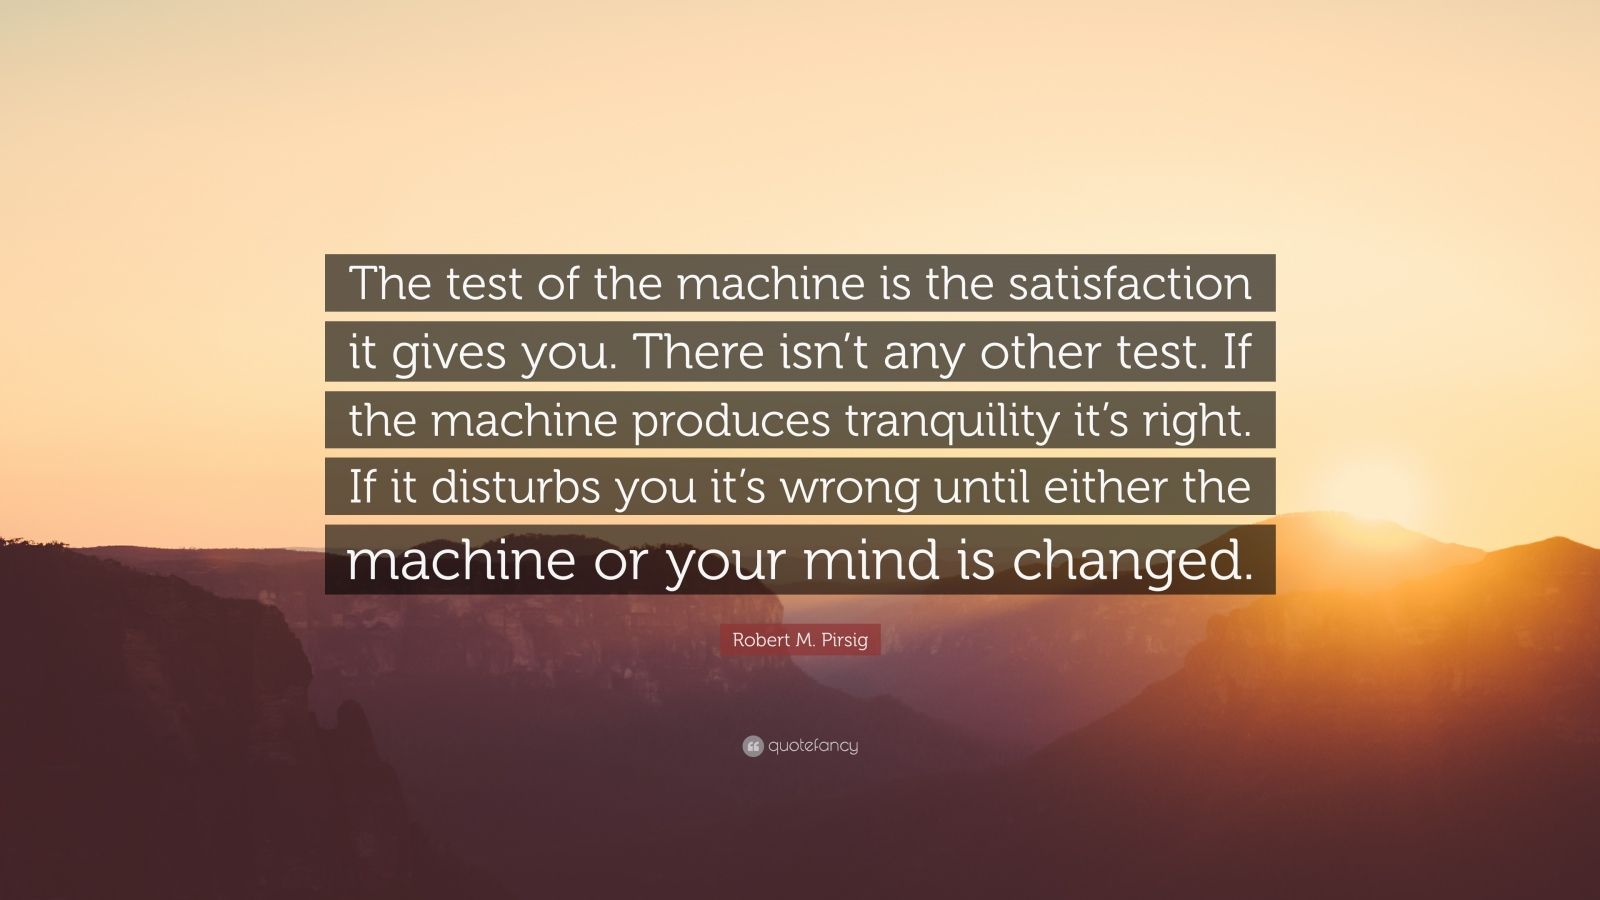 "Robert M. Pirsig Quote: ""The test of the machine is the satisfaction it gives you. There isn't any other test. If the machine produces tranquility it's right. If it disturbs you it's wrong until either the machine or your mind is changed."""